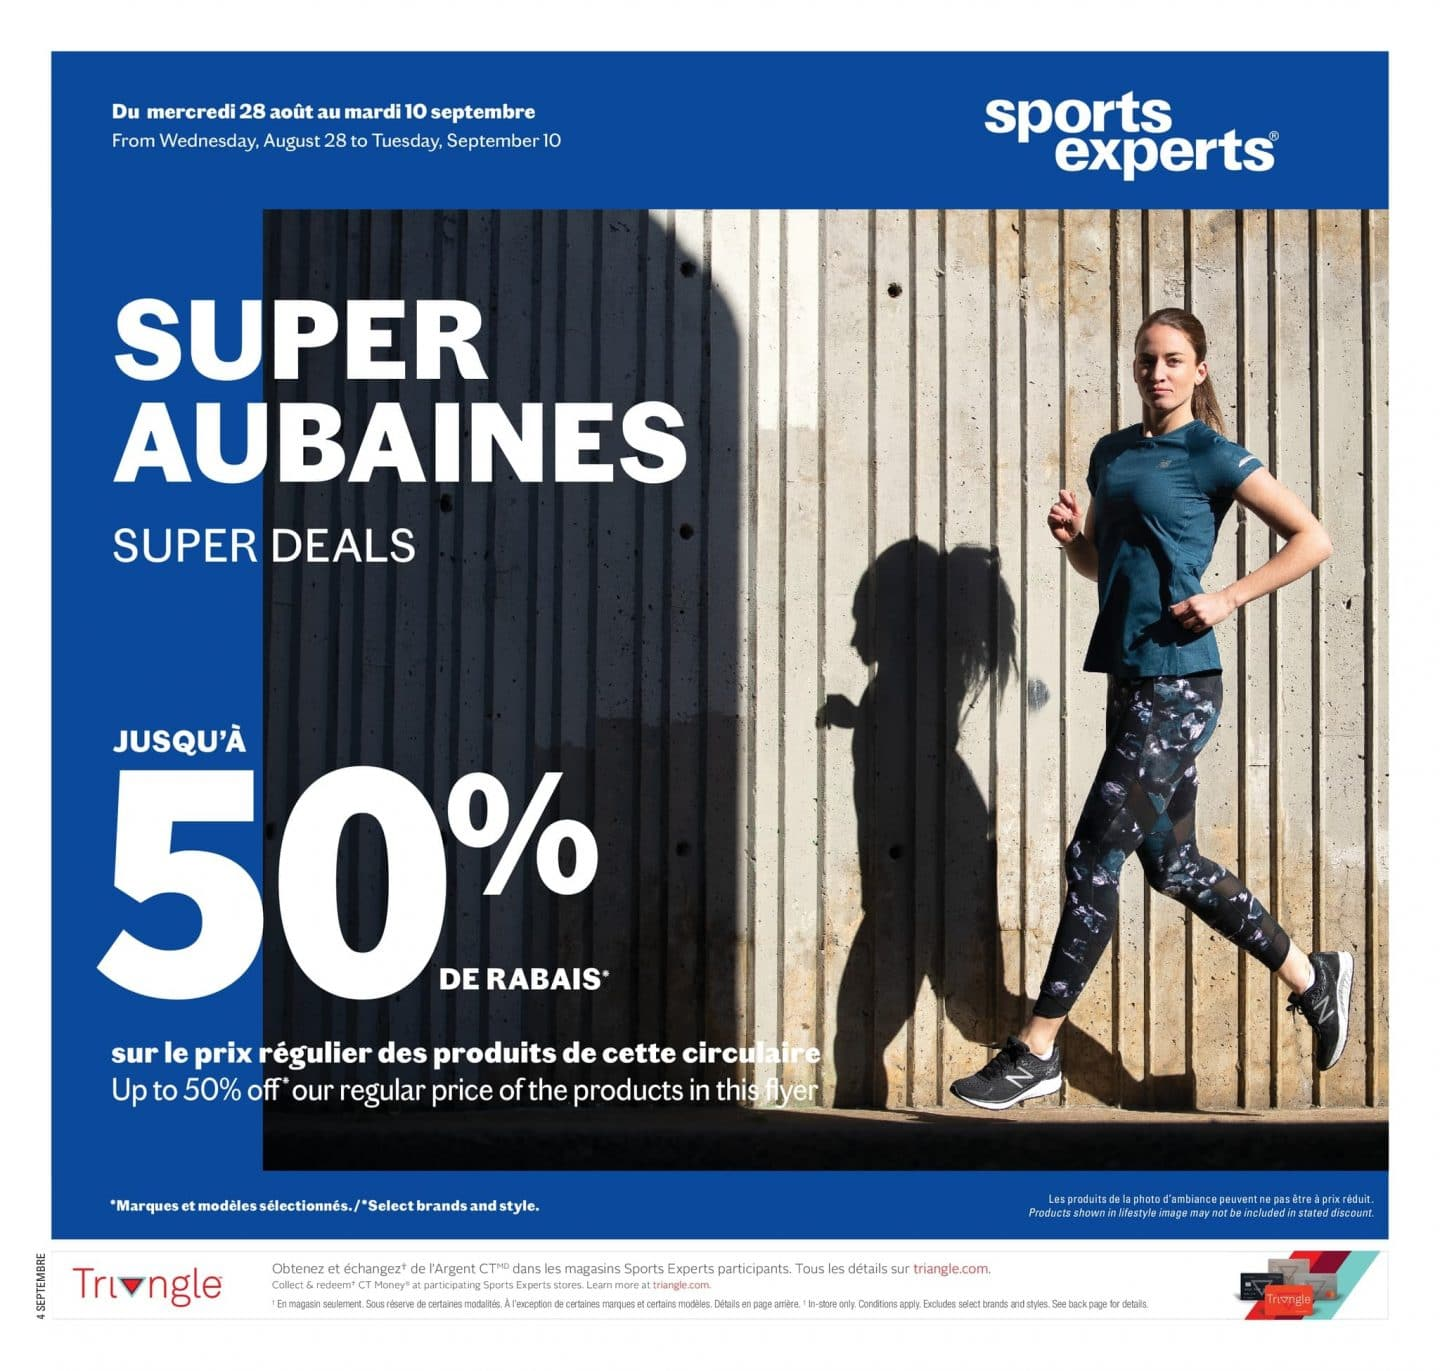 Circulaire Sports Experts 28 août - 10 septembre 2019